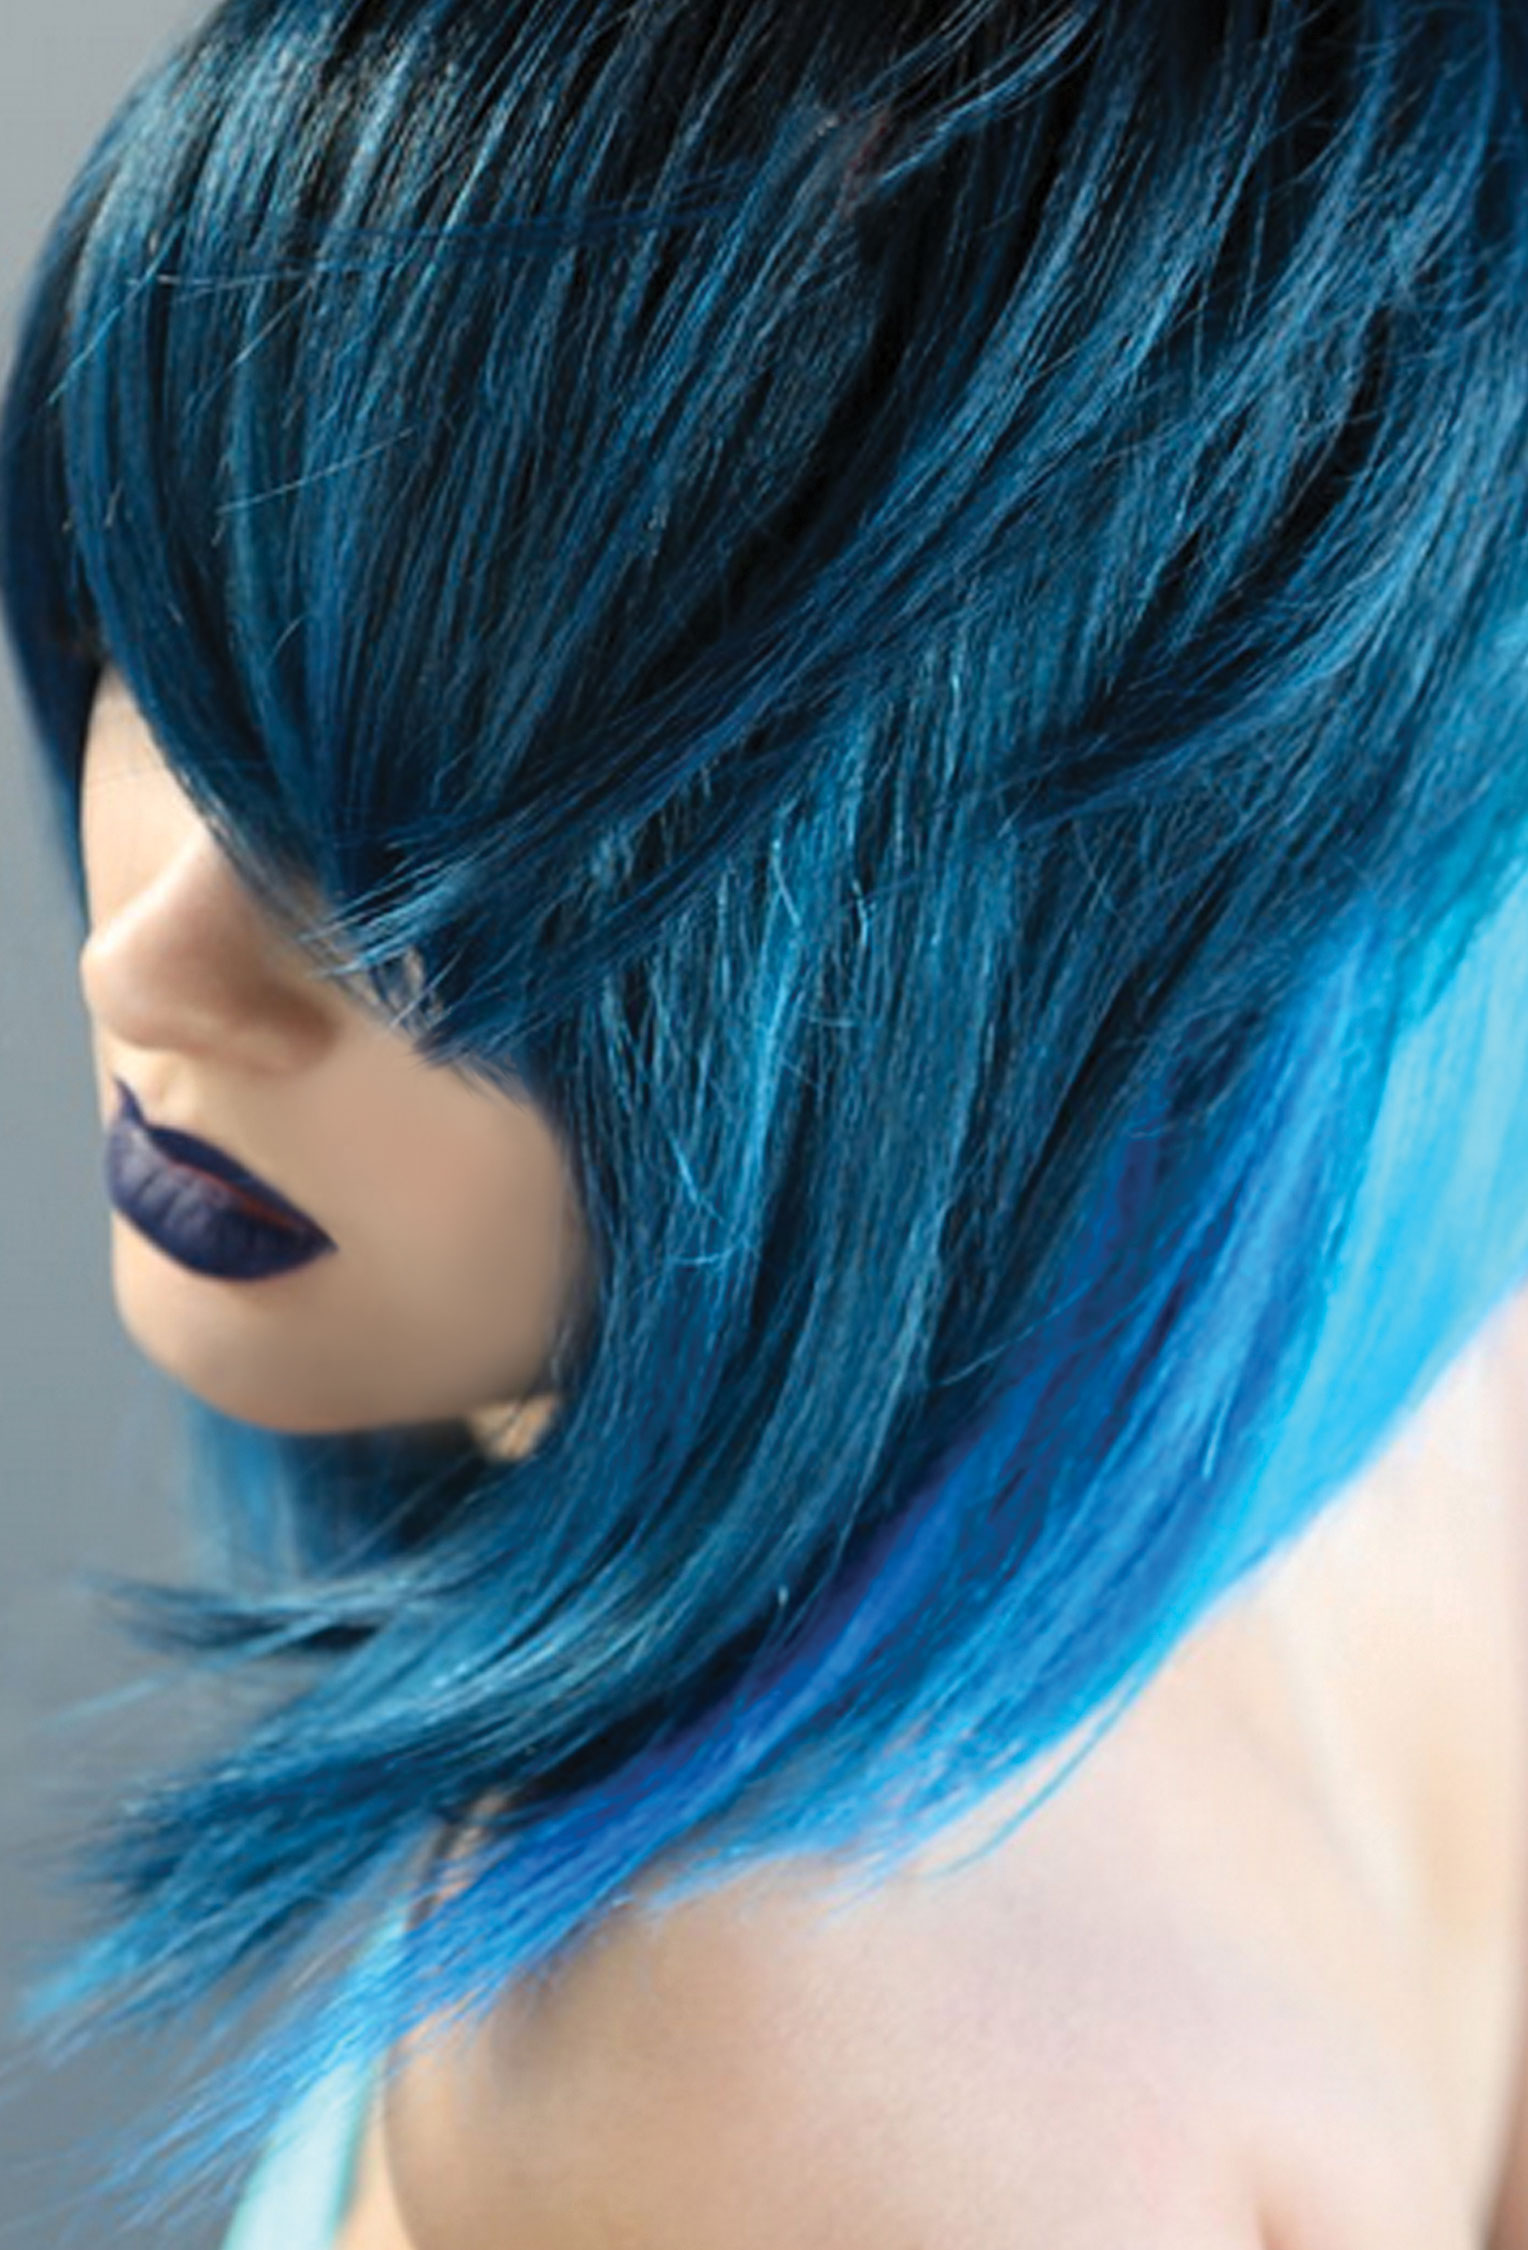 FORMULA: Vibrant Turquoise-Blue Hair Color